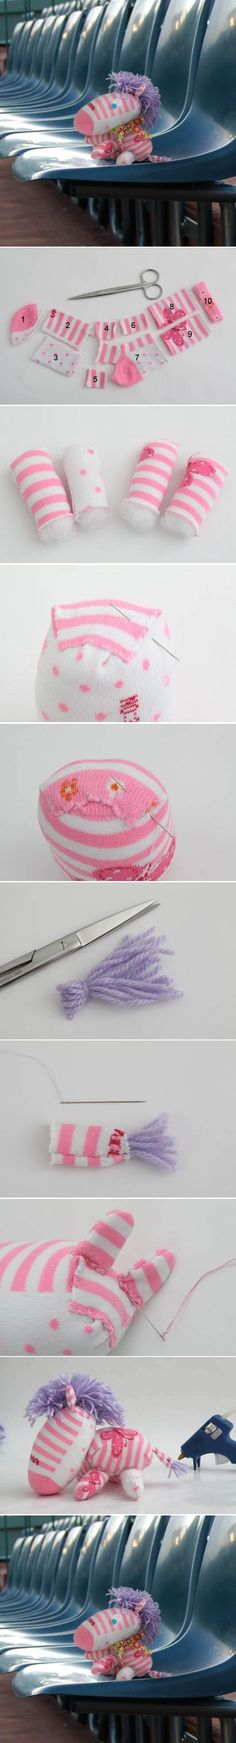 DIY Little Sock Zebra DIY Little Sock Zebra